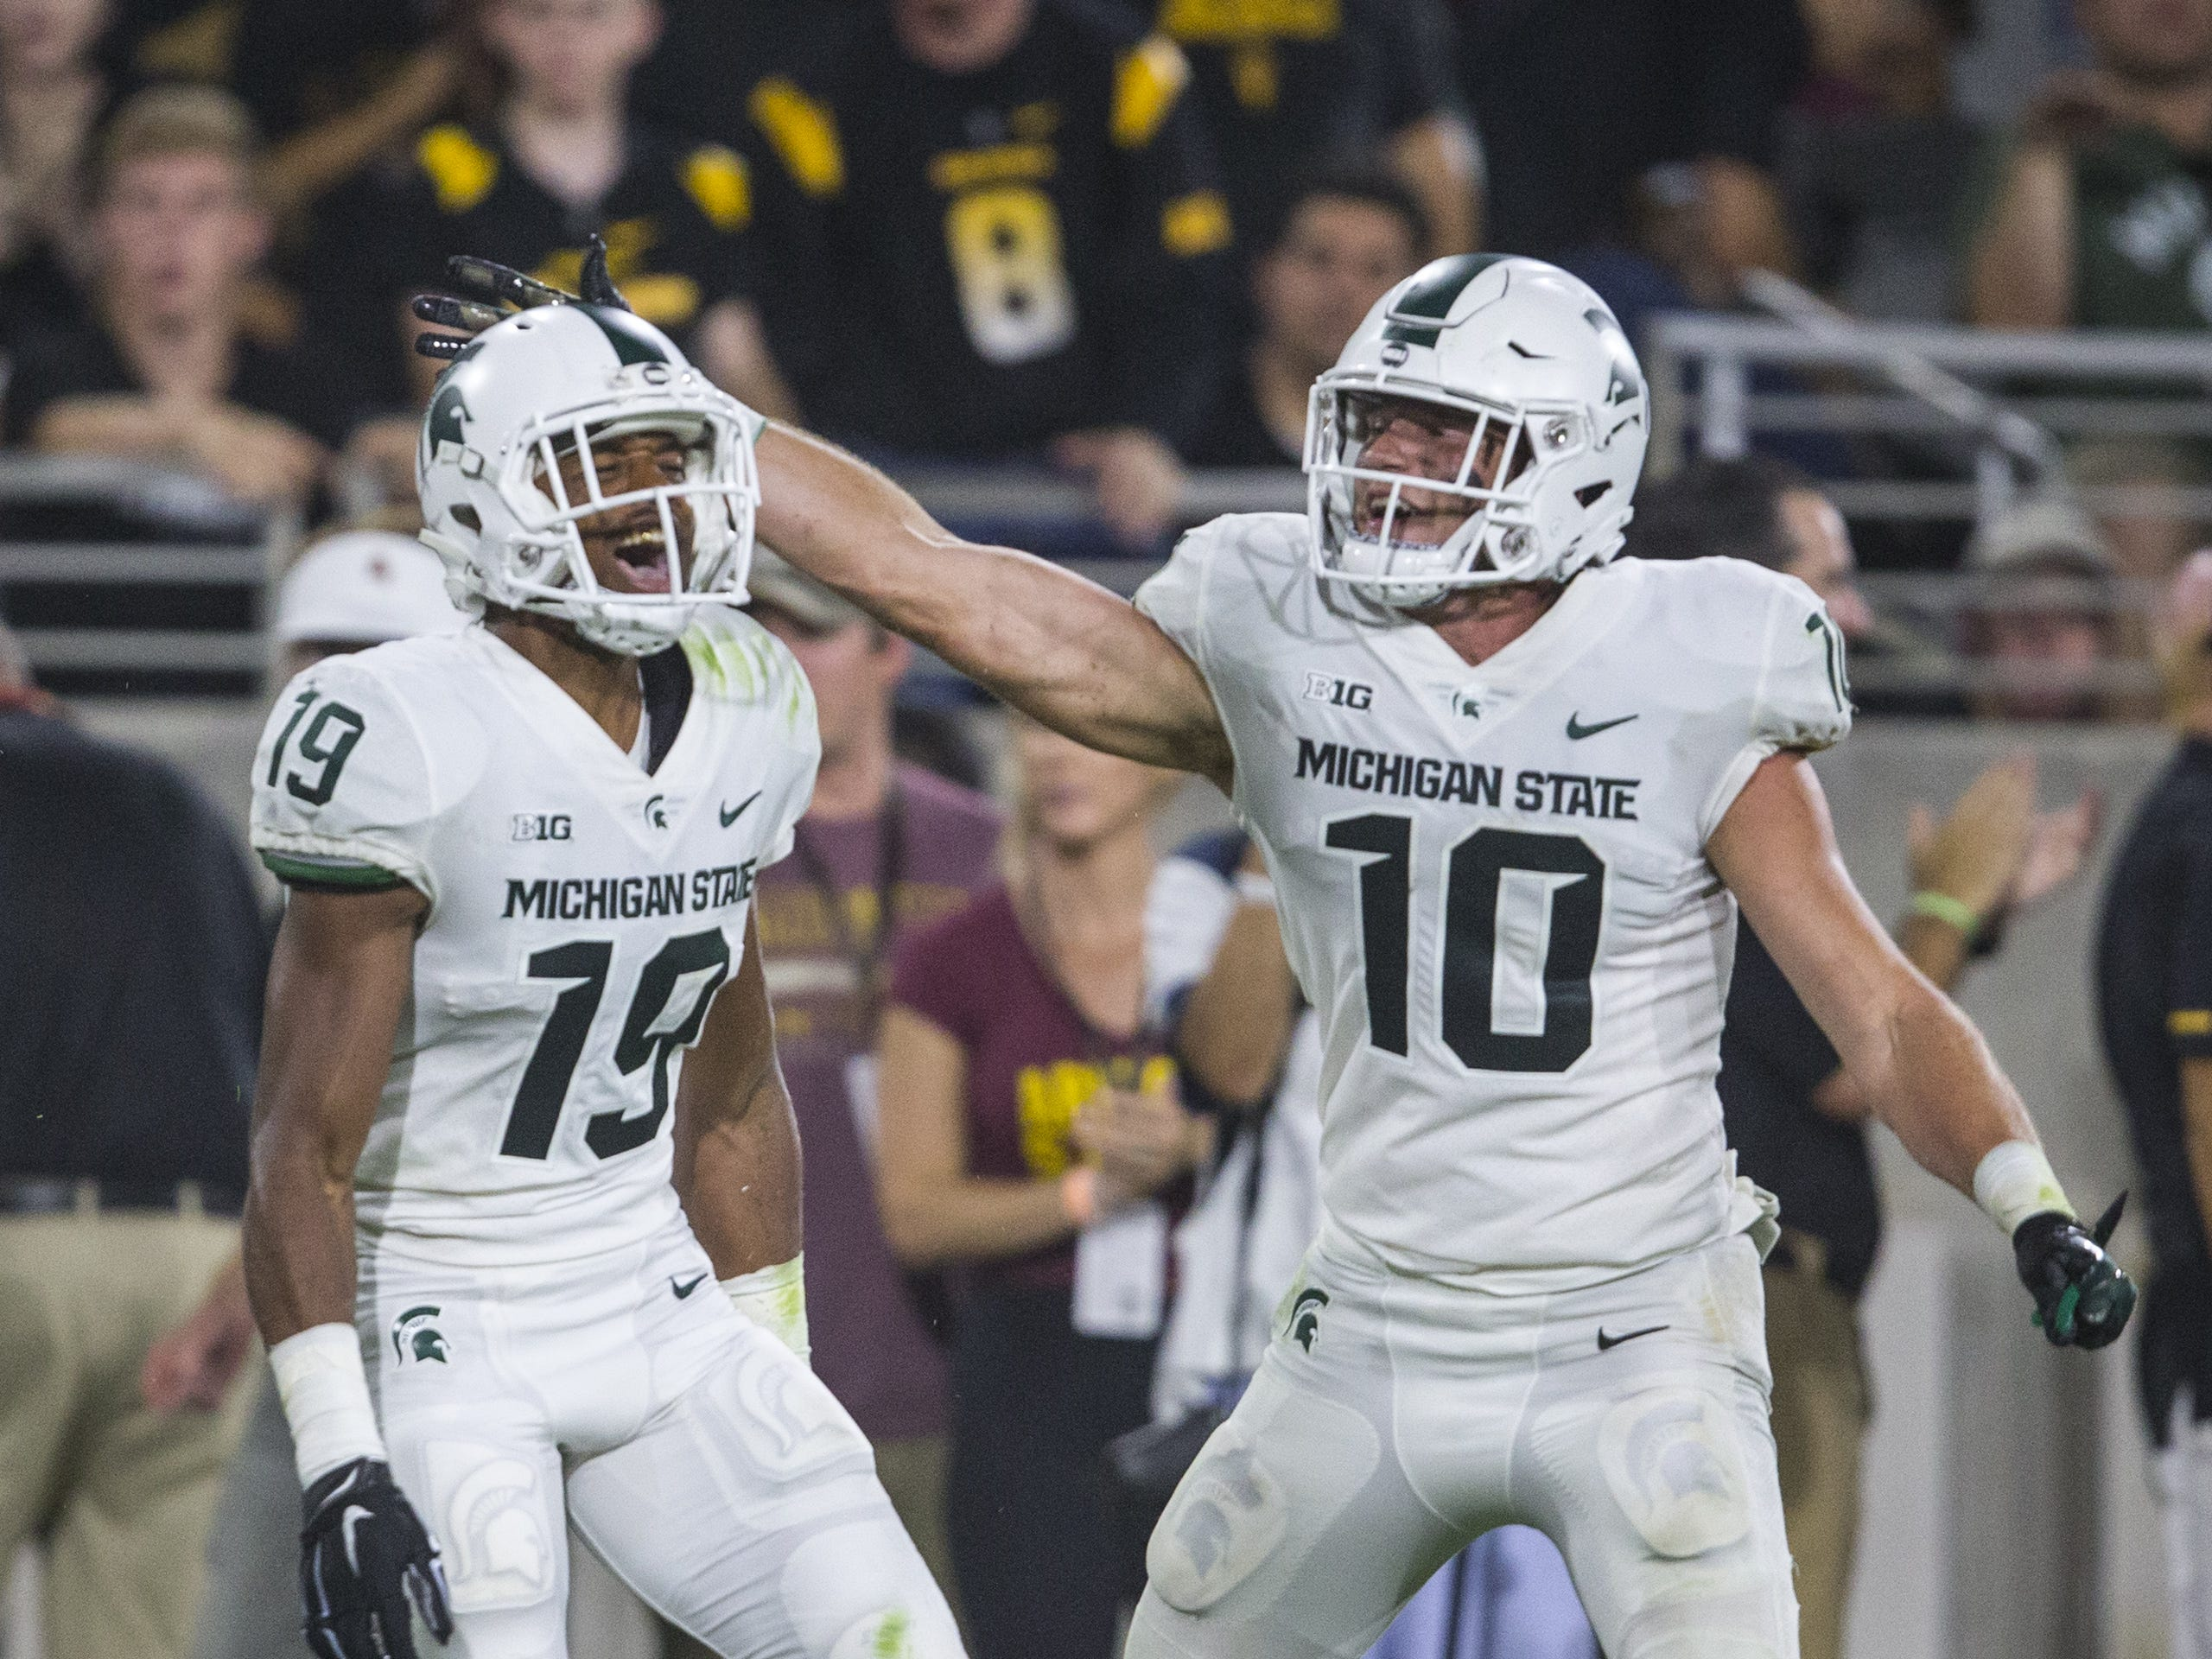 Michigan State's Josh Butler (19) and Matt Morrissey (10) celebrate after Butler broke up a catch against Arizona State in the 3rd quarter on Saturday, Sept. 8, 2018, at Sun Devil Stadium in Tempe, Ariz.